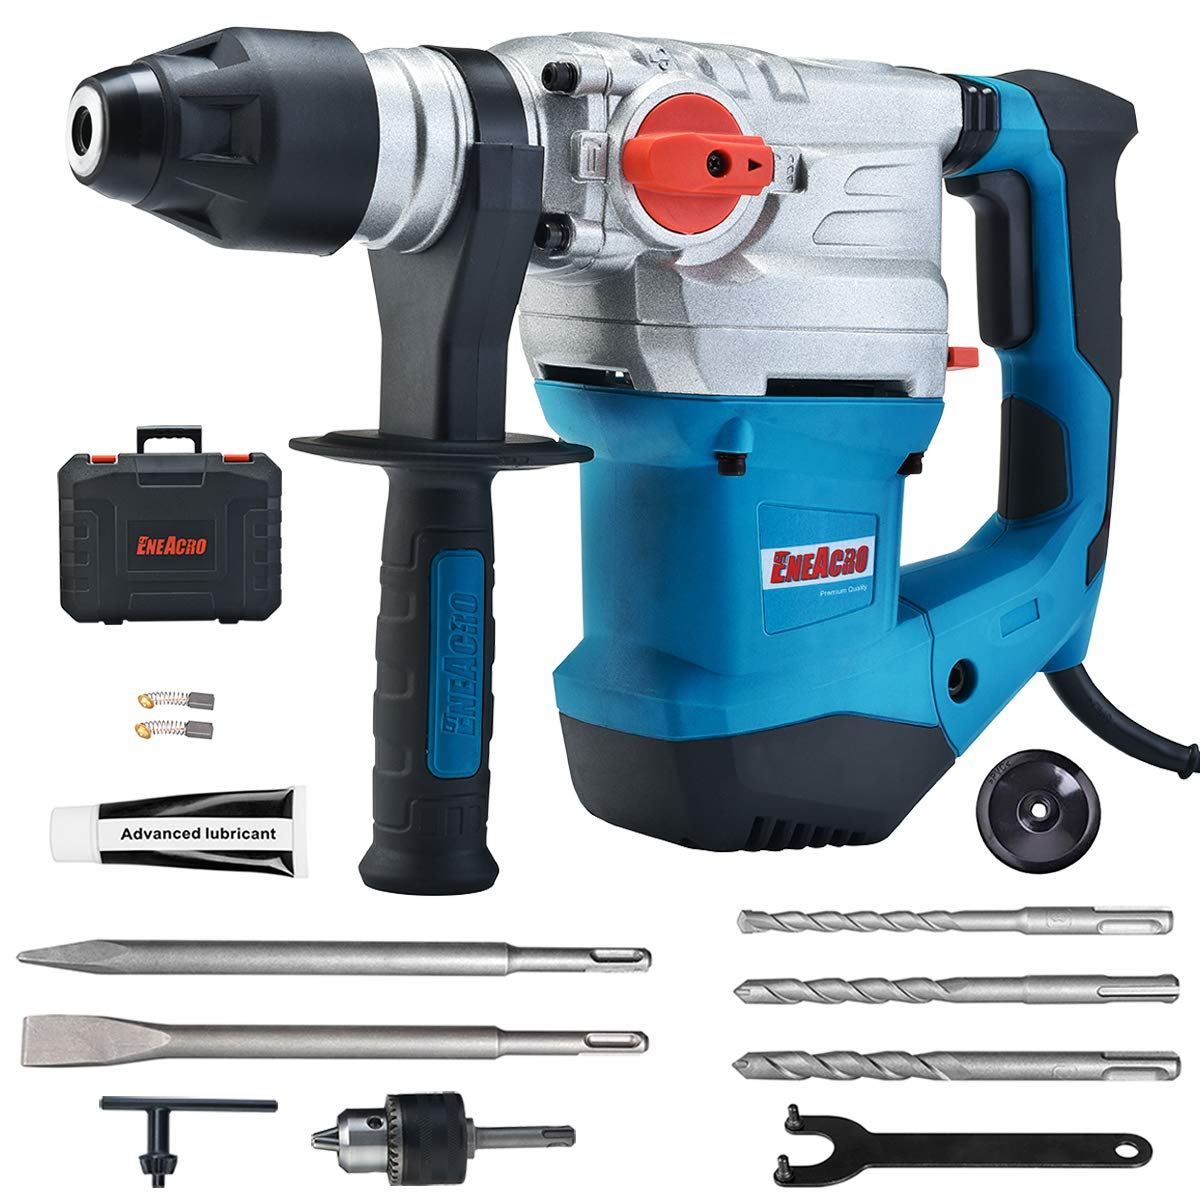 ENEACRO 1-1/4 Inch SDS-Plus 12.5 Amp Heavy Duty Rotary Hammer Drill, Safety Clutch 4 Functions with Vibration Control Including Grease, Chisels and Drill Chuck with Case